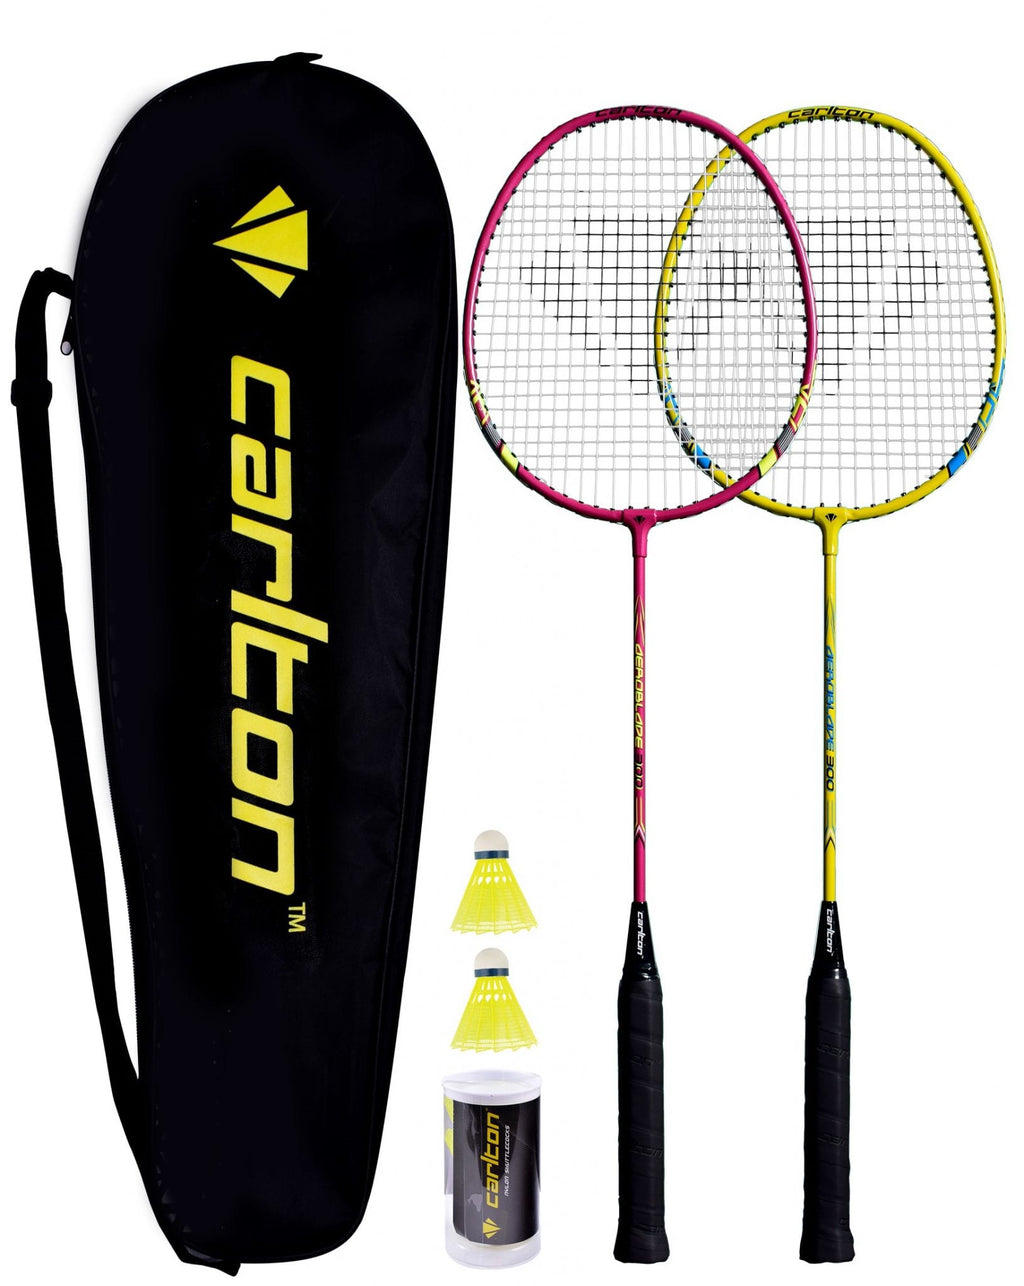 Carlton Aeroblade 300 Badminton Racket Set